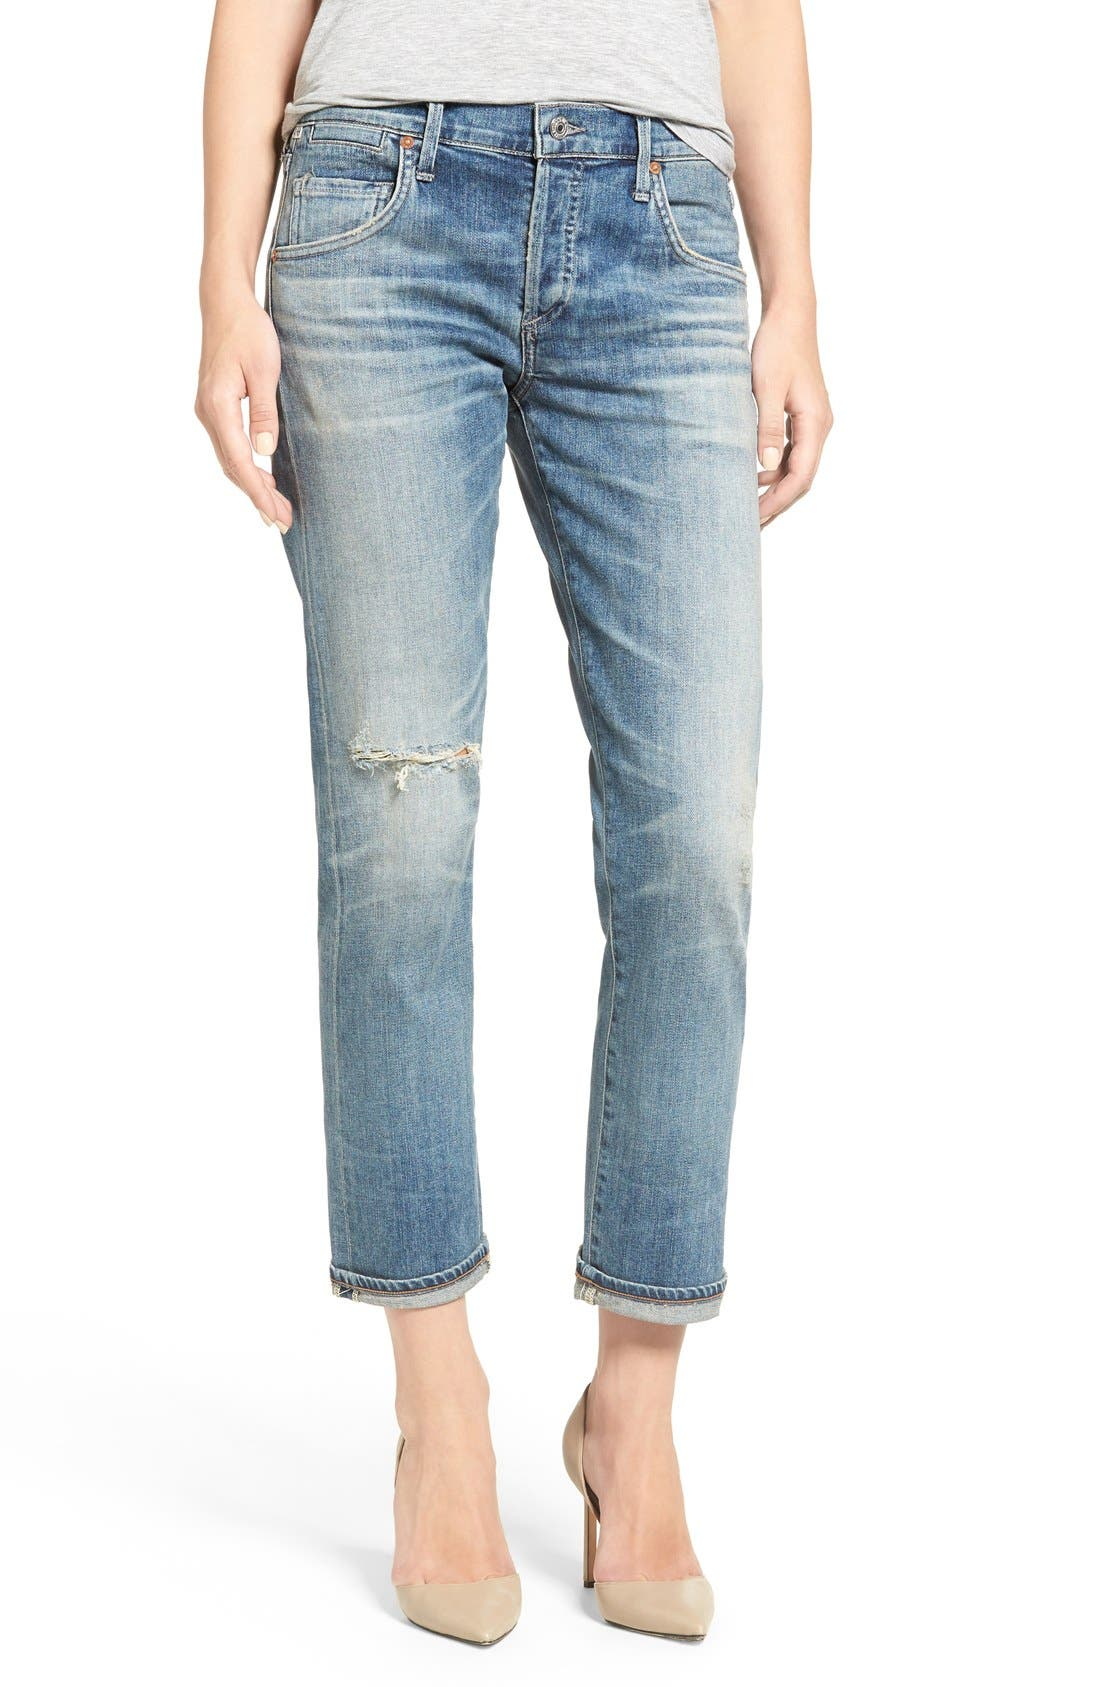 Alternate Image 1 Selected - Citizens of Humanity 'Emerson' Ripped Slim Boyfriend Jeans (Roseland)